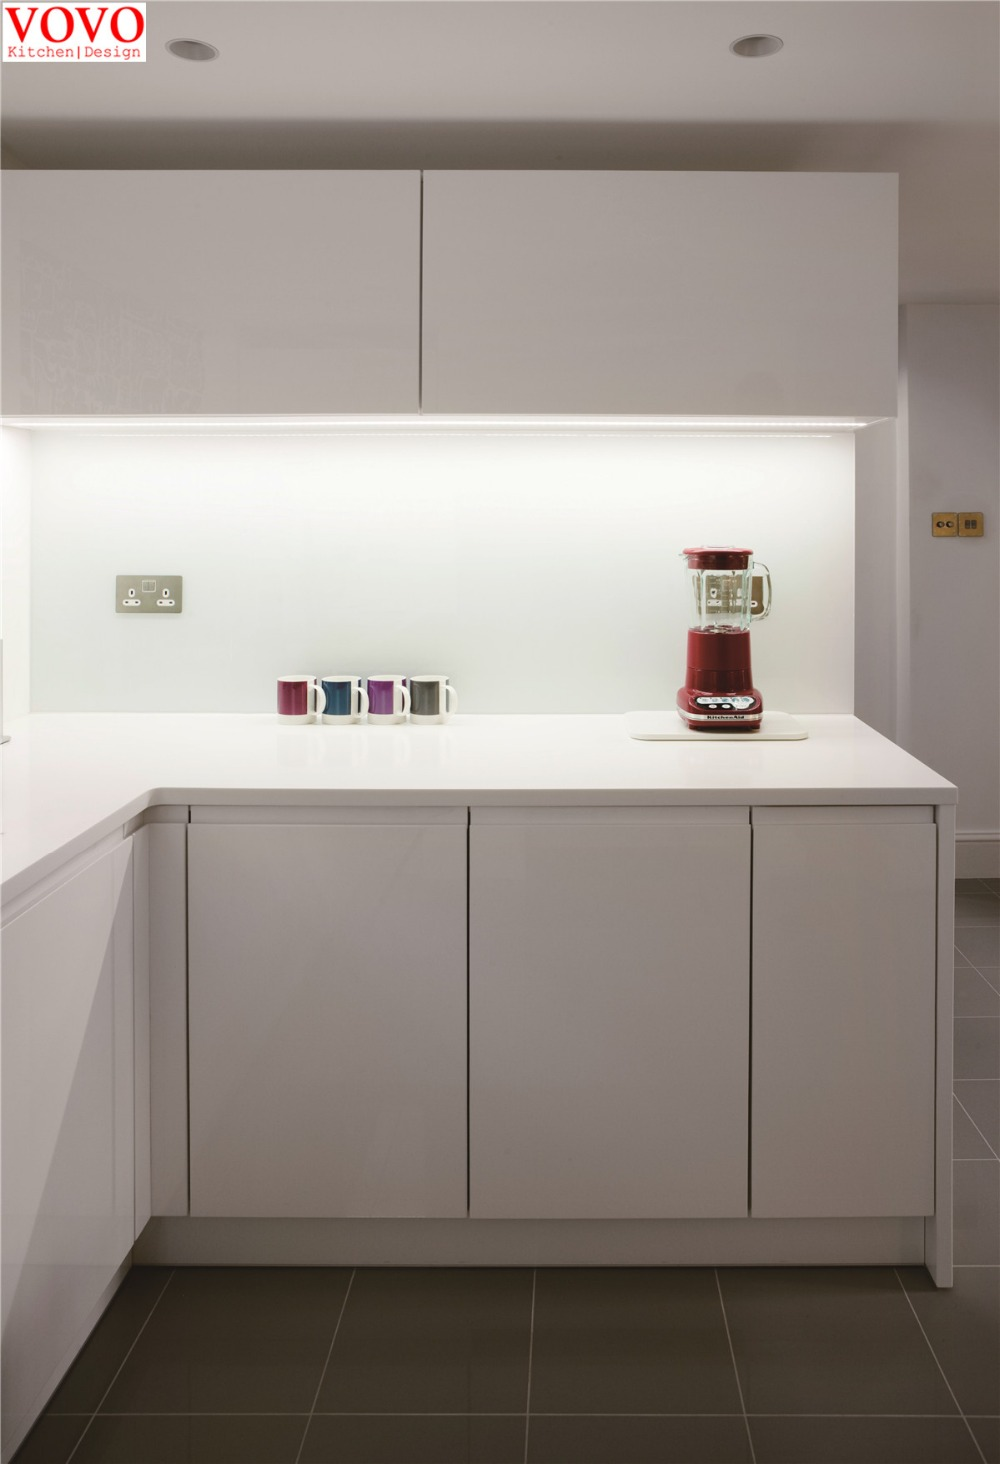 Handless Small L Shaped Kitchen Cabinet Kitchen Cabinet Small Kitchen Cabinetcabinet Small Aliexpress